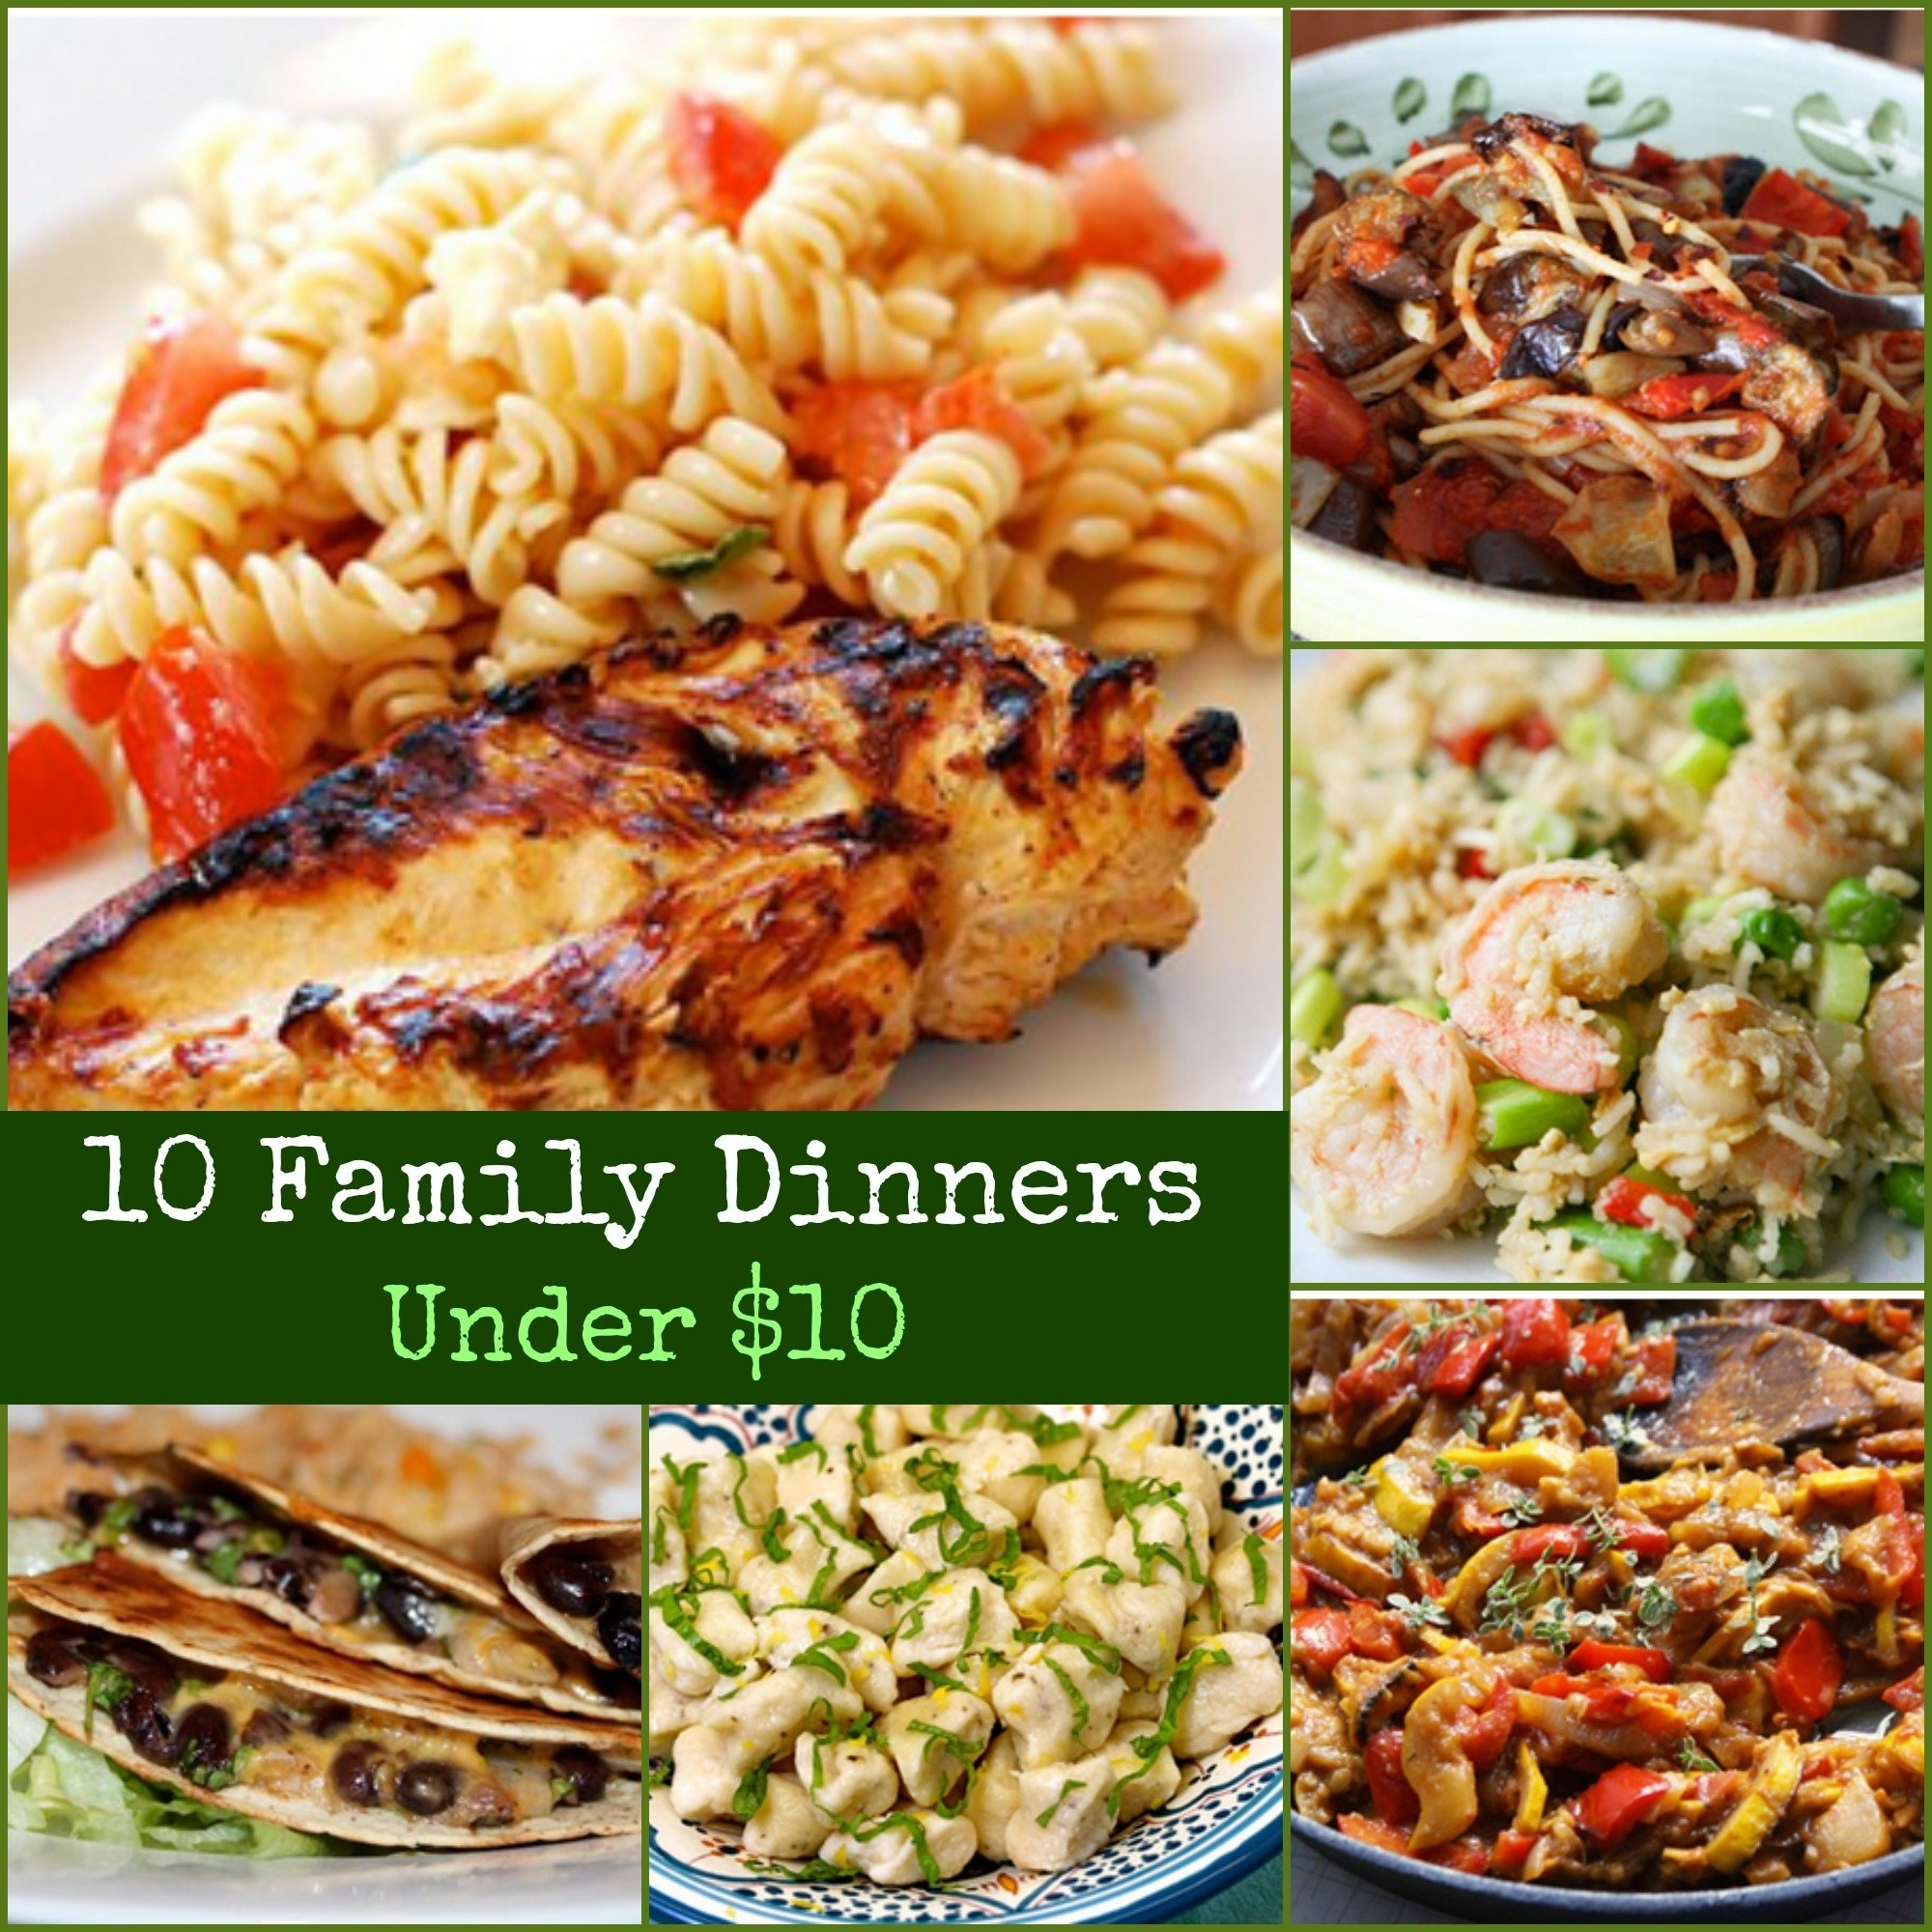 10 Stylish Quick Easy Cheap Dinner Ideas download quick and easy dinner recipes for family food photos 1 2020